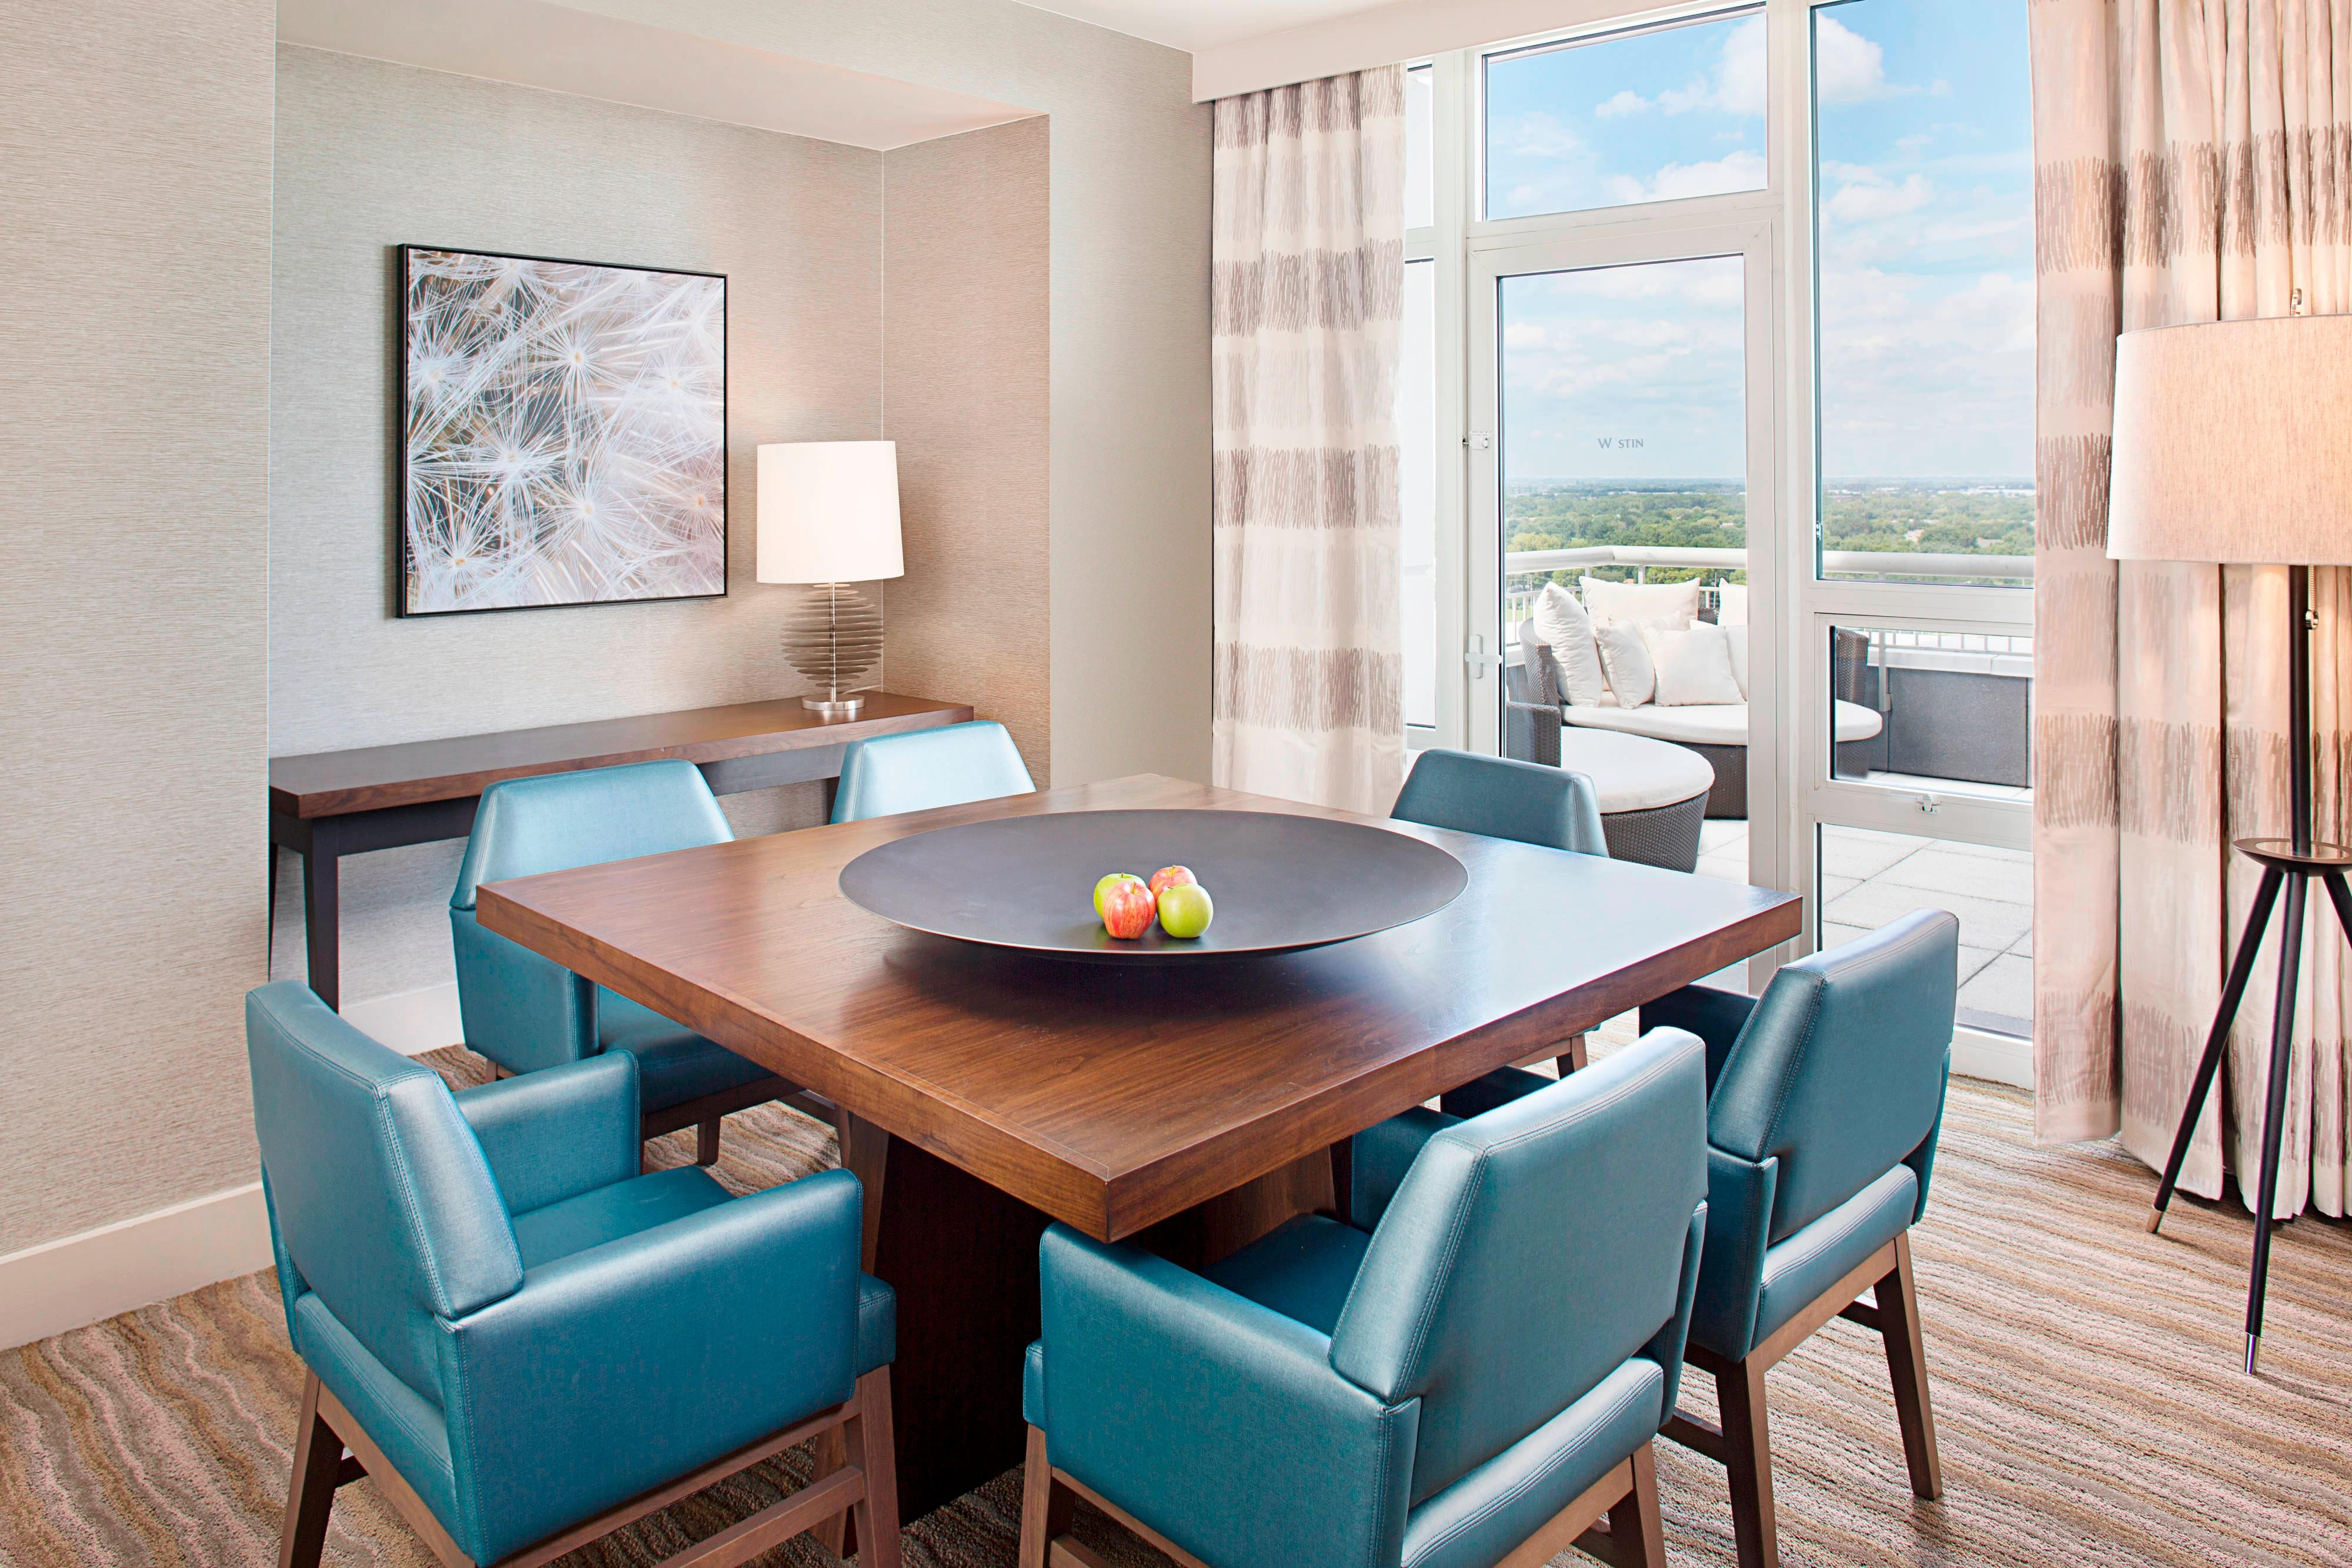 Presidential West Suite - Dining Area and Paito Access